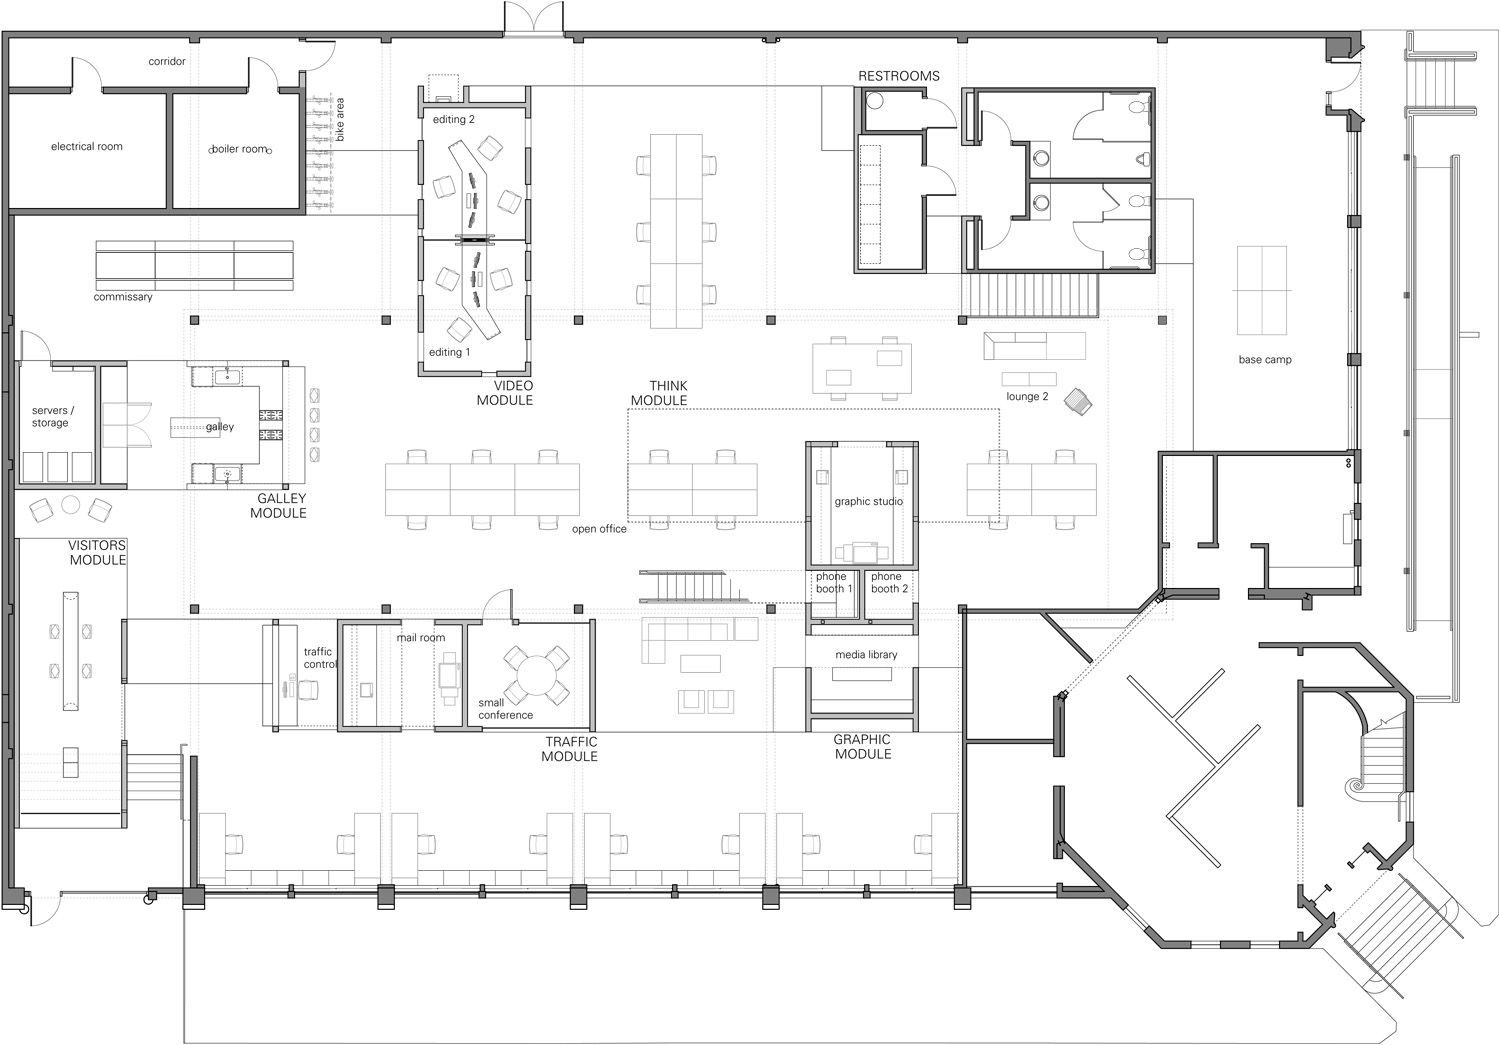 Office Floor Plan Designer Enchanting Decorating Design